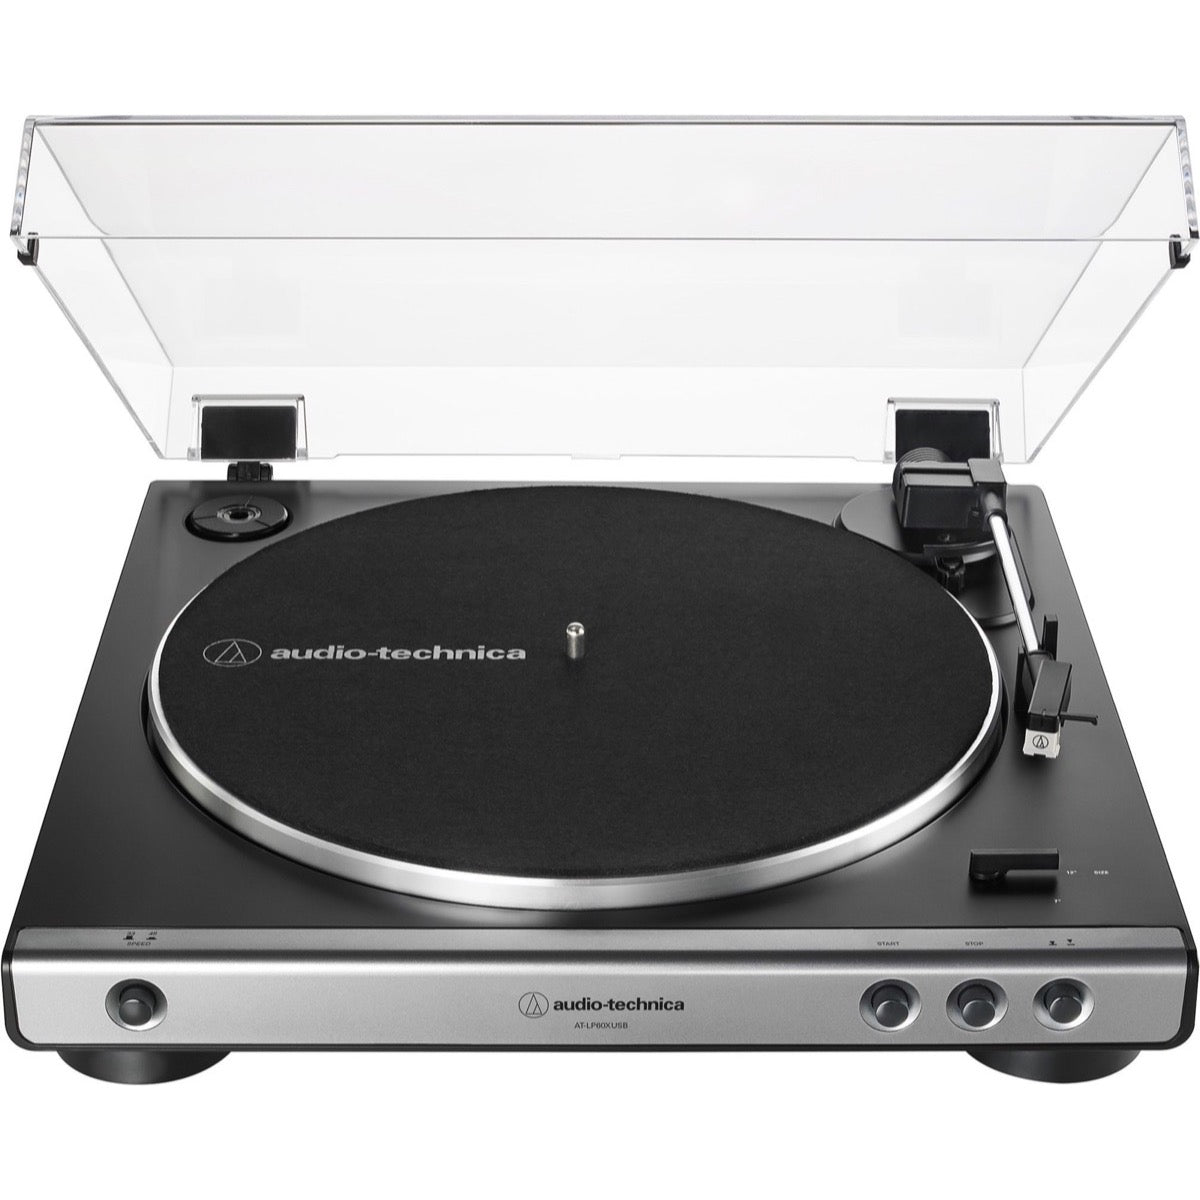 Audio-Technica AT-LP60XUSB Belt-Drive Turntable, Gun Metal